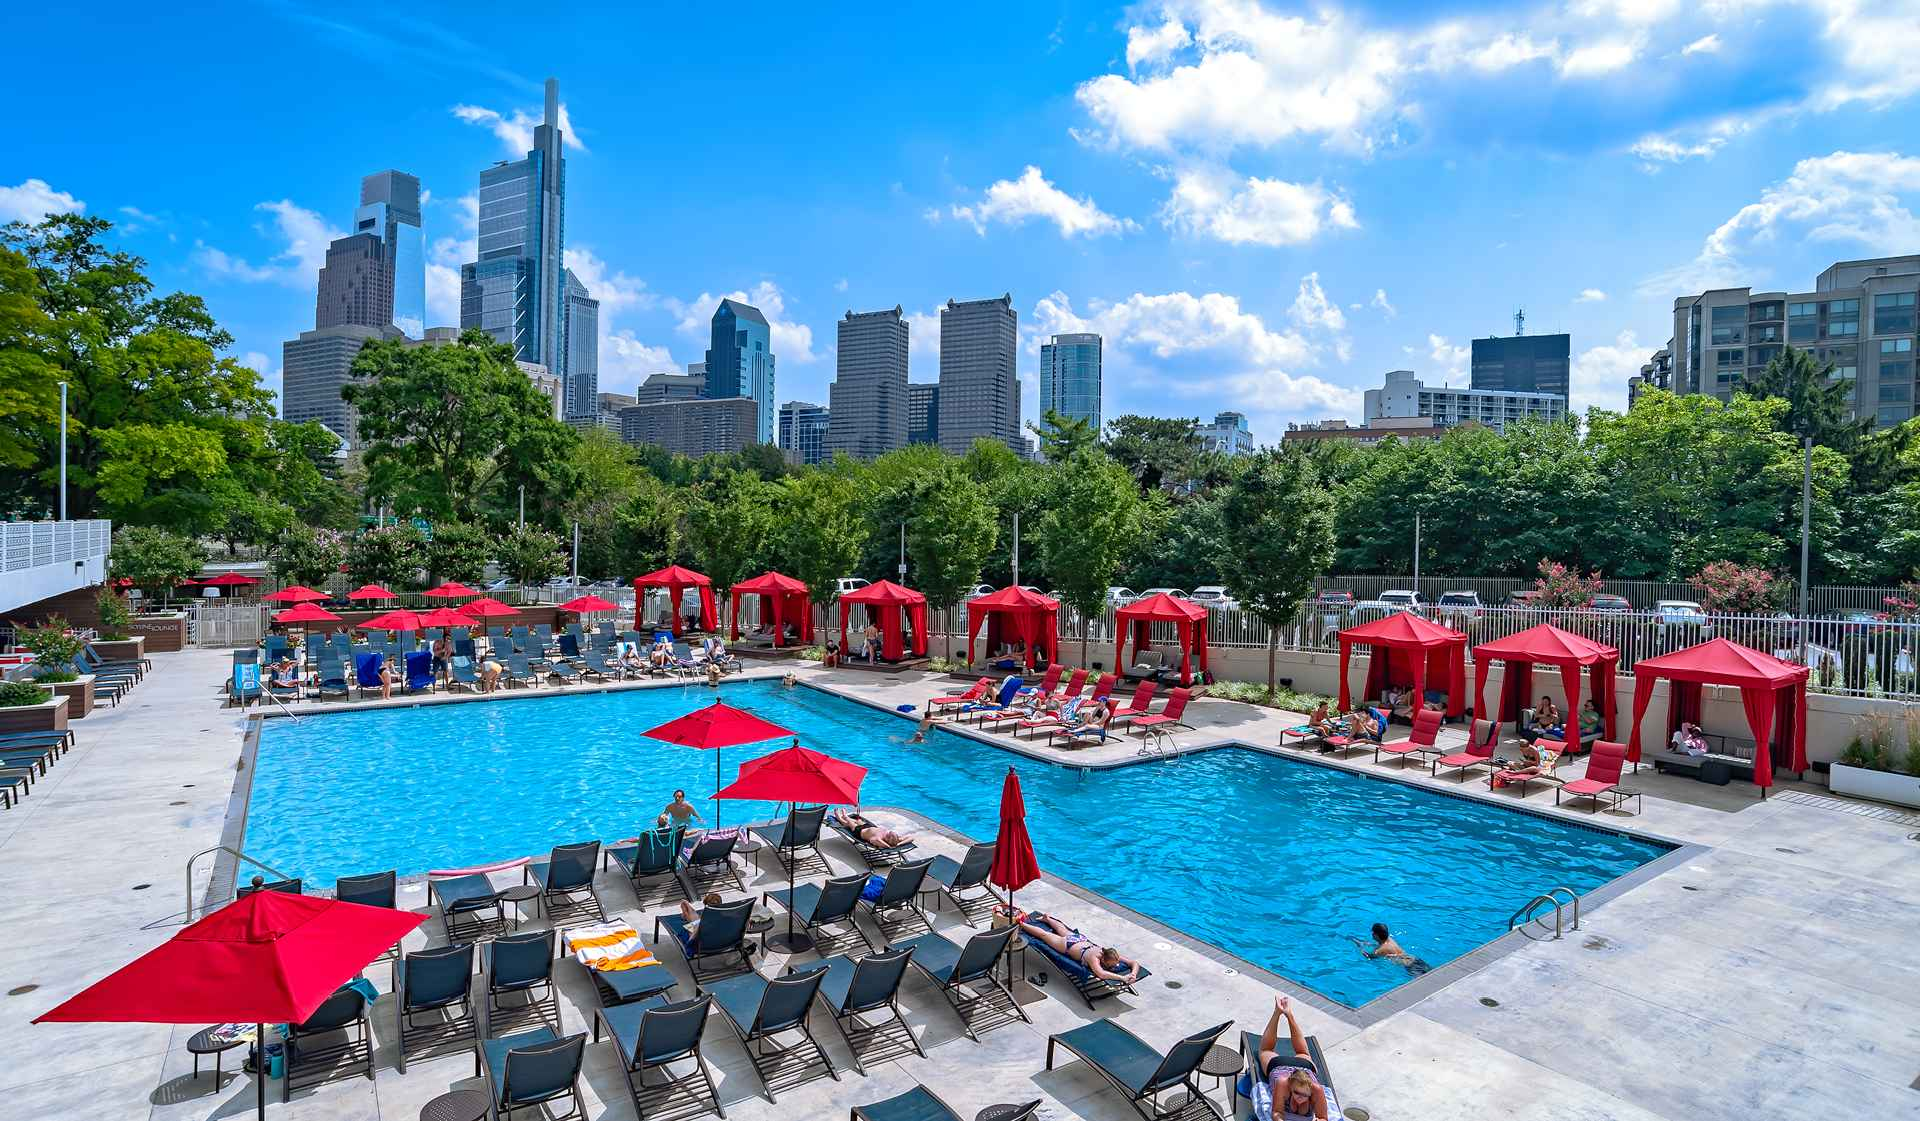 Park Towne Place Premier Apartment Homes - Philadelphia, PA - Pool